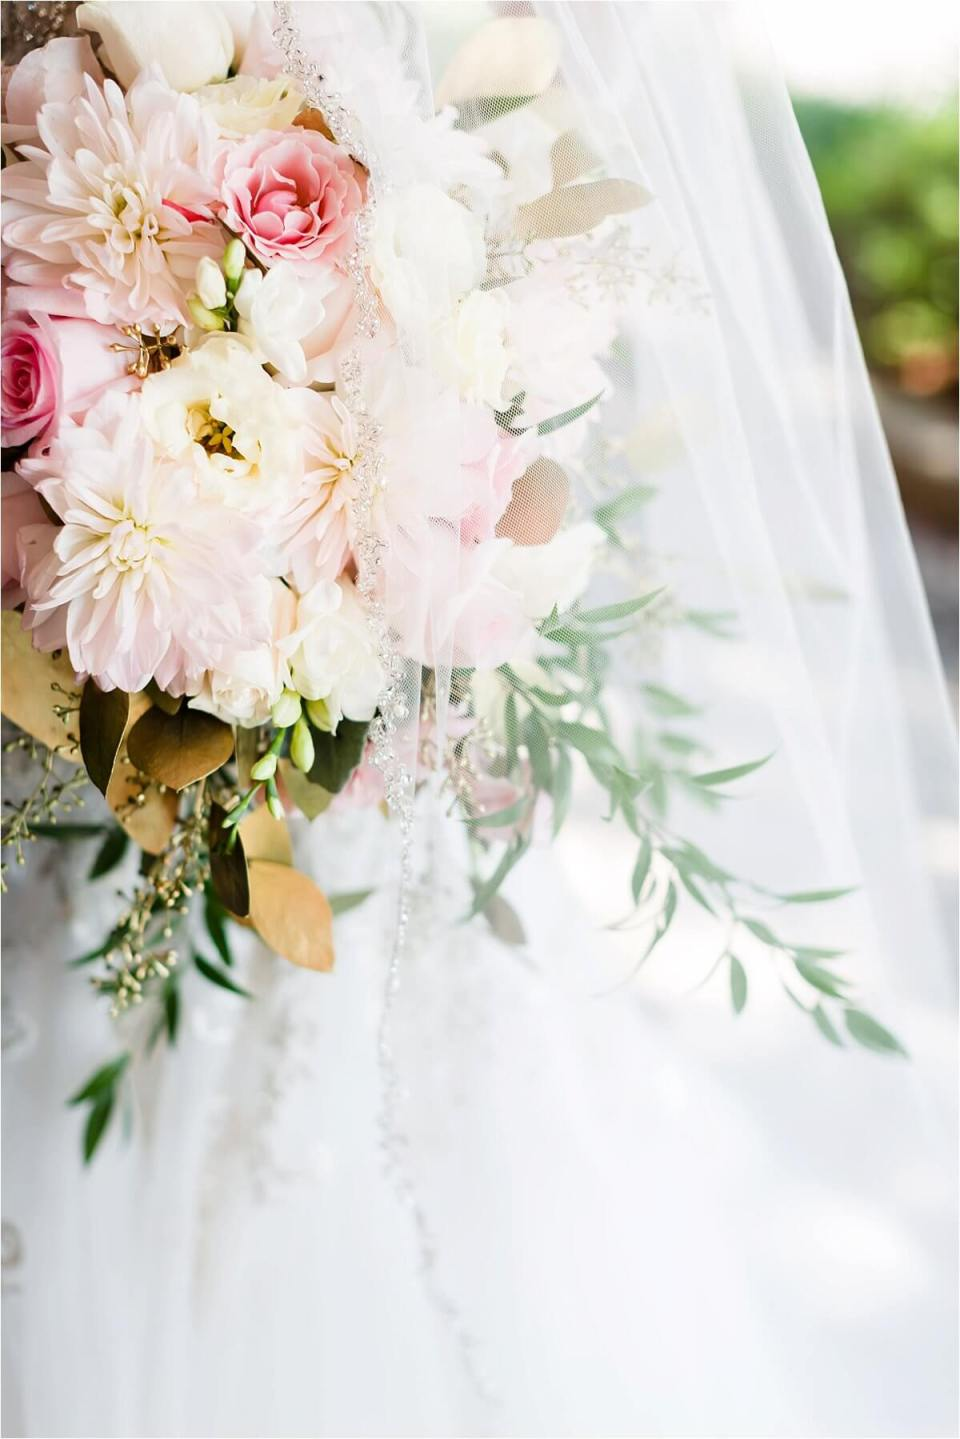 Bridal bride bouquet with white blush and gold and greenery - Woodstock London Ontario Lebanese middle eastern arab Wedding and engagement photos - Dylan Martin Photography